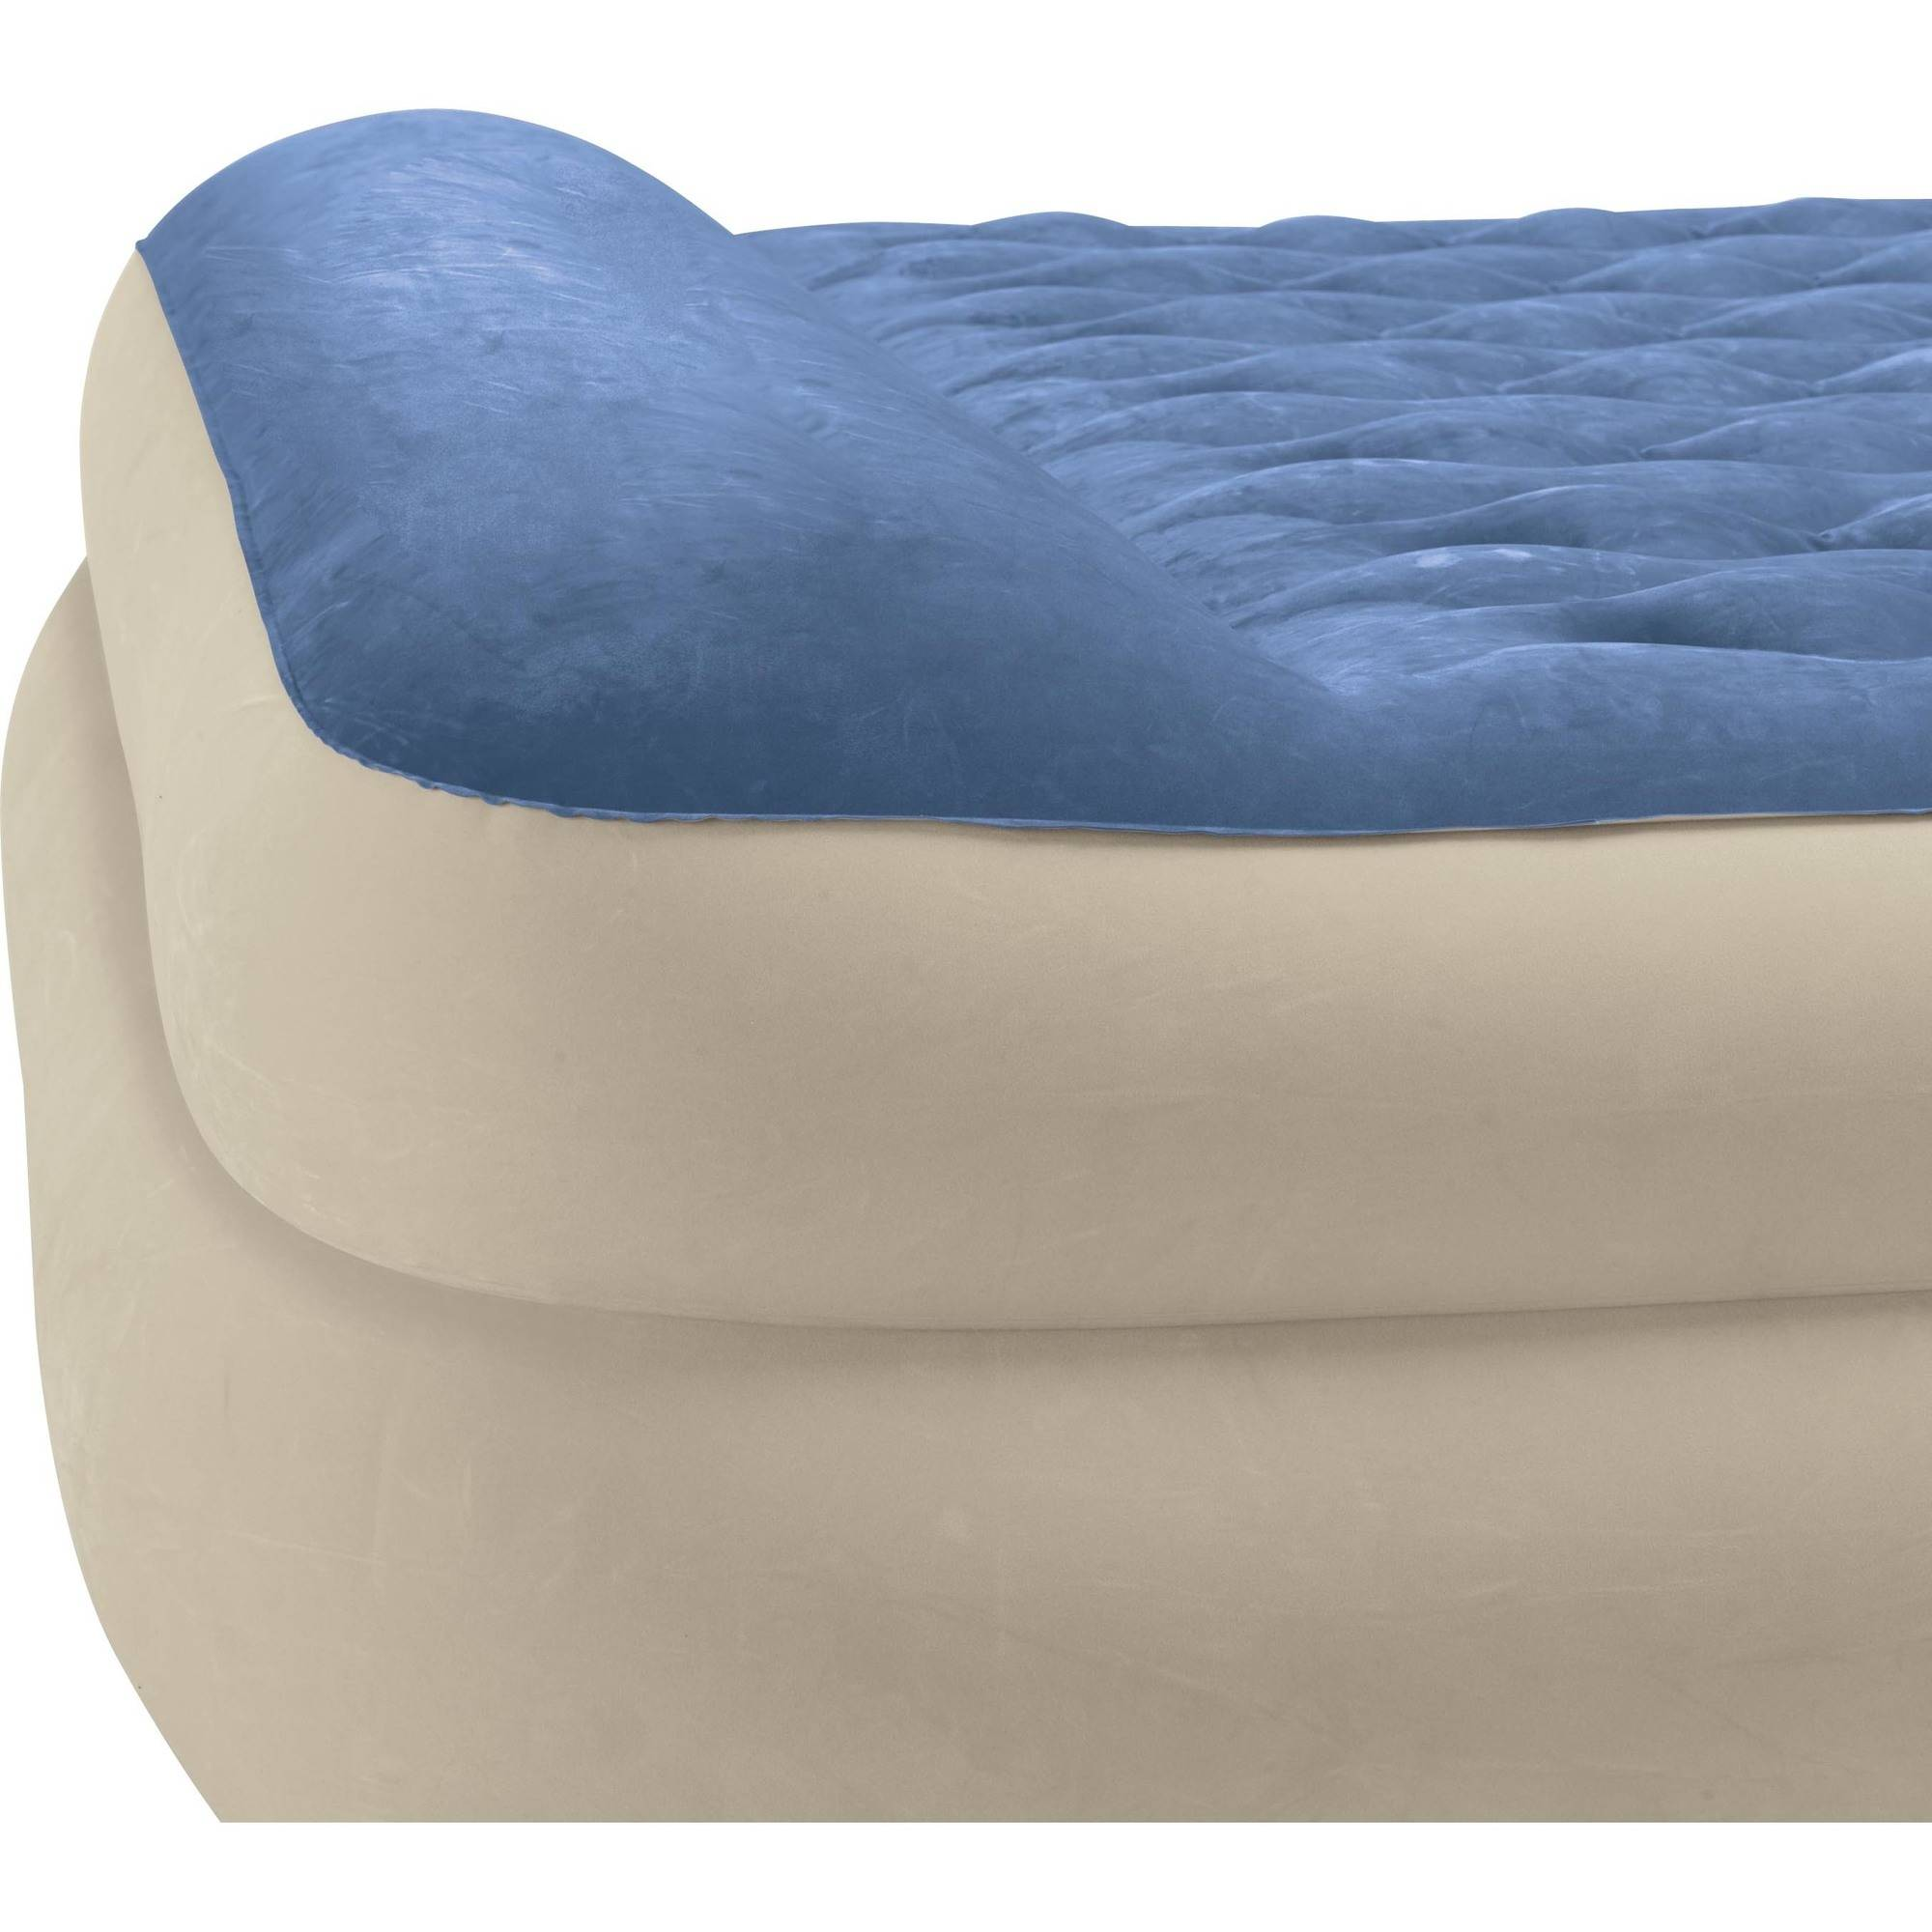 Bed rest pillow walmart - Bed Rest Pillow Walmart 14